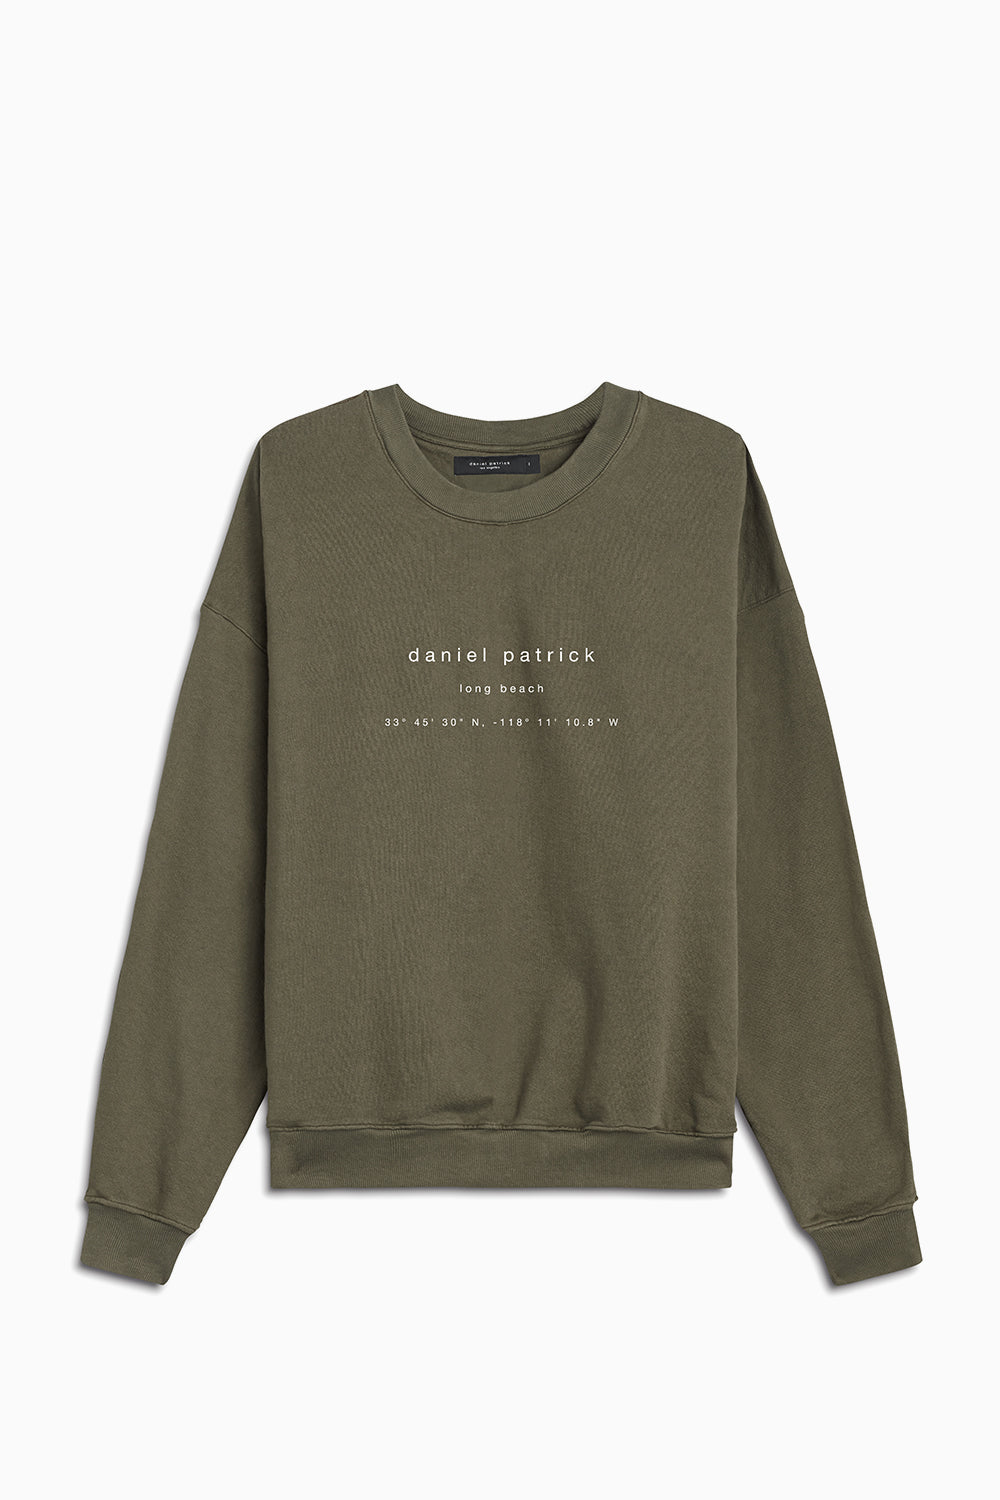 long beach souvenir sweat / washed olive